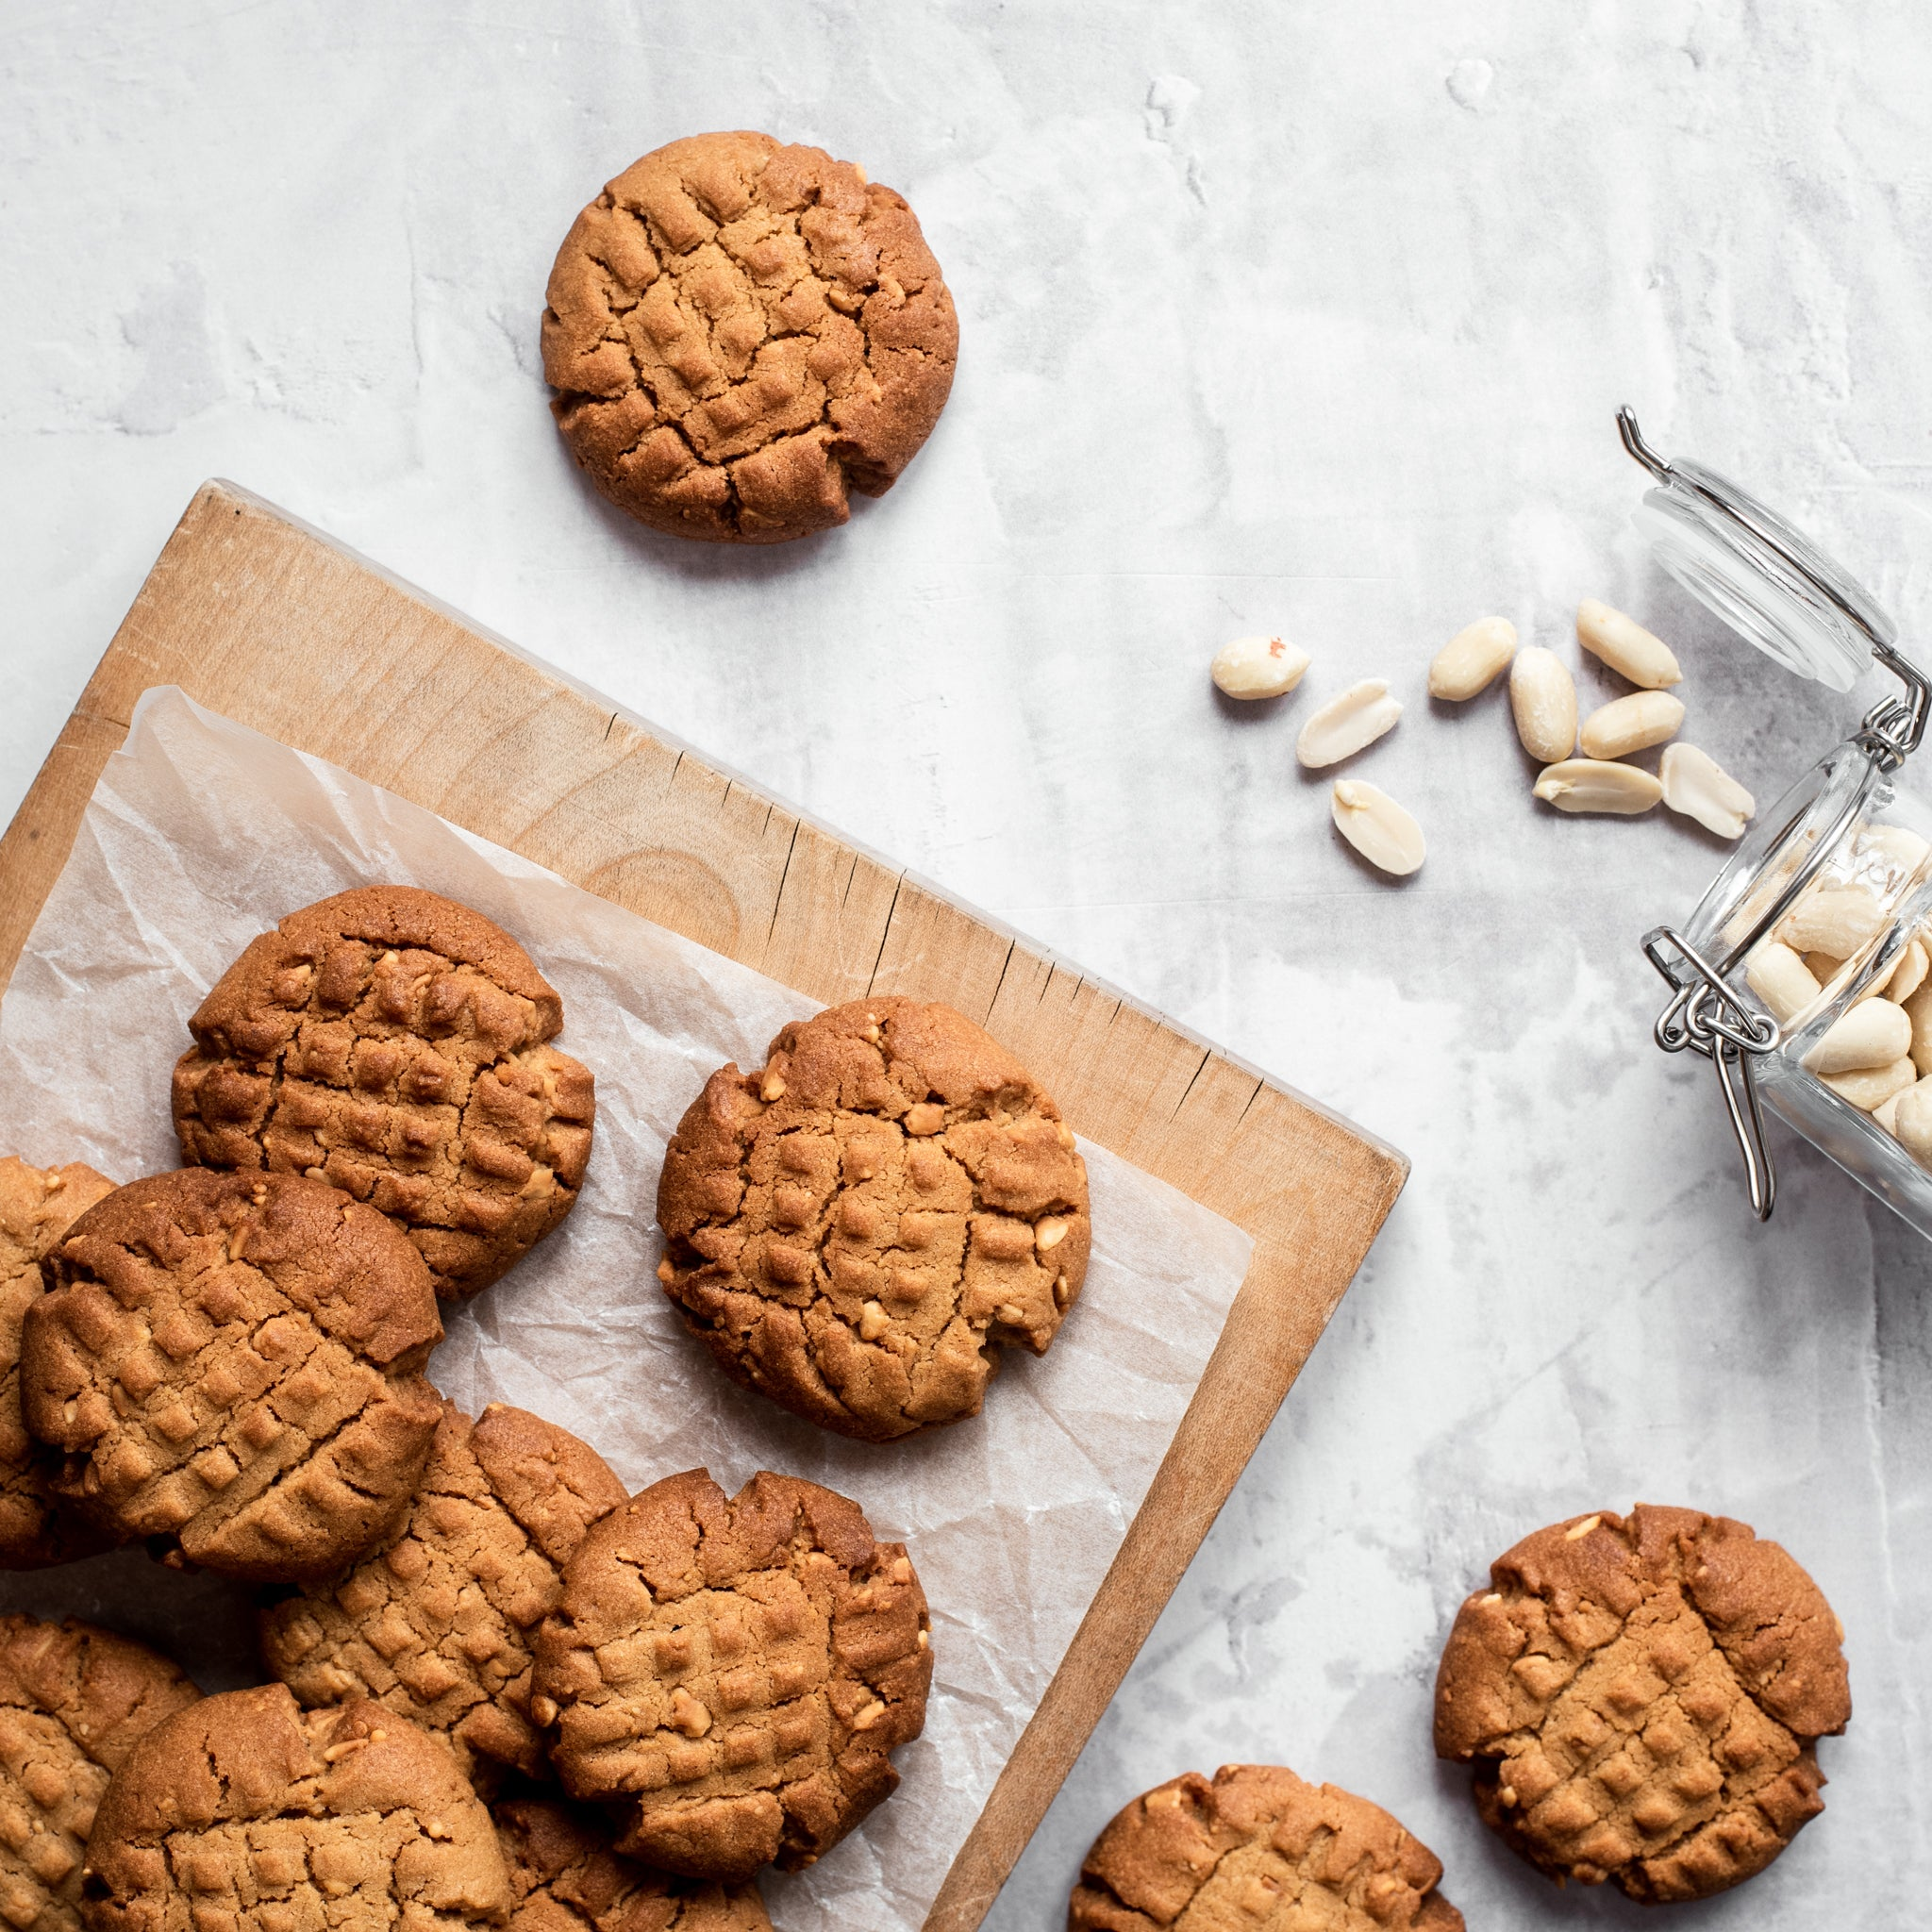 Crunchy-Peanut-Butter-Cookies-SQUARE-1.jpg